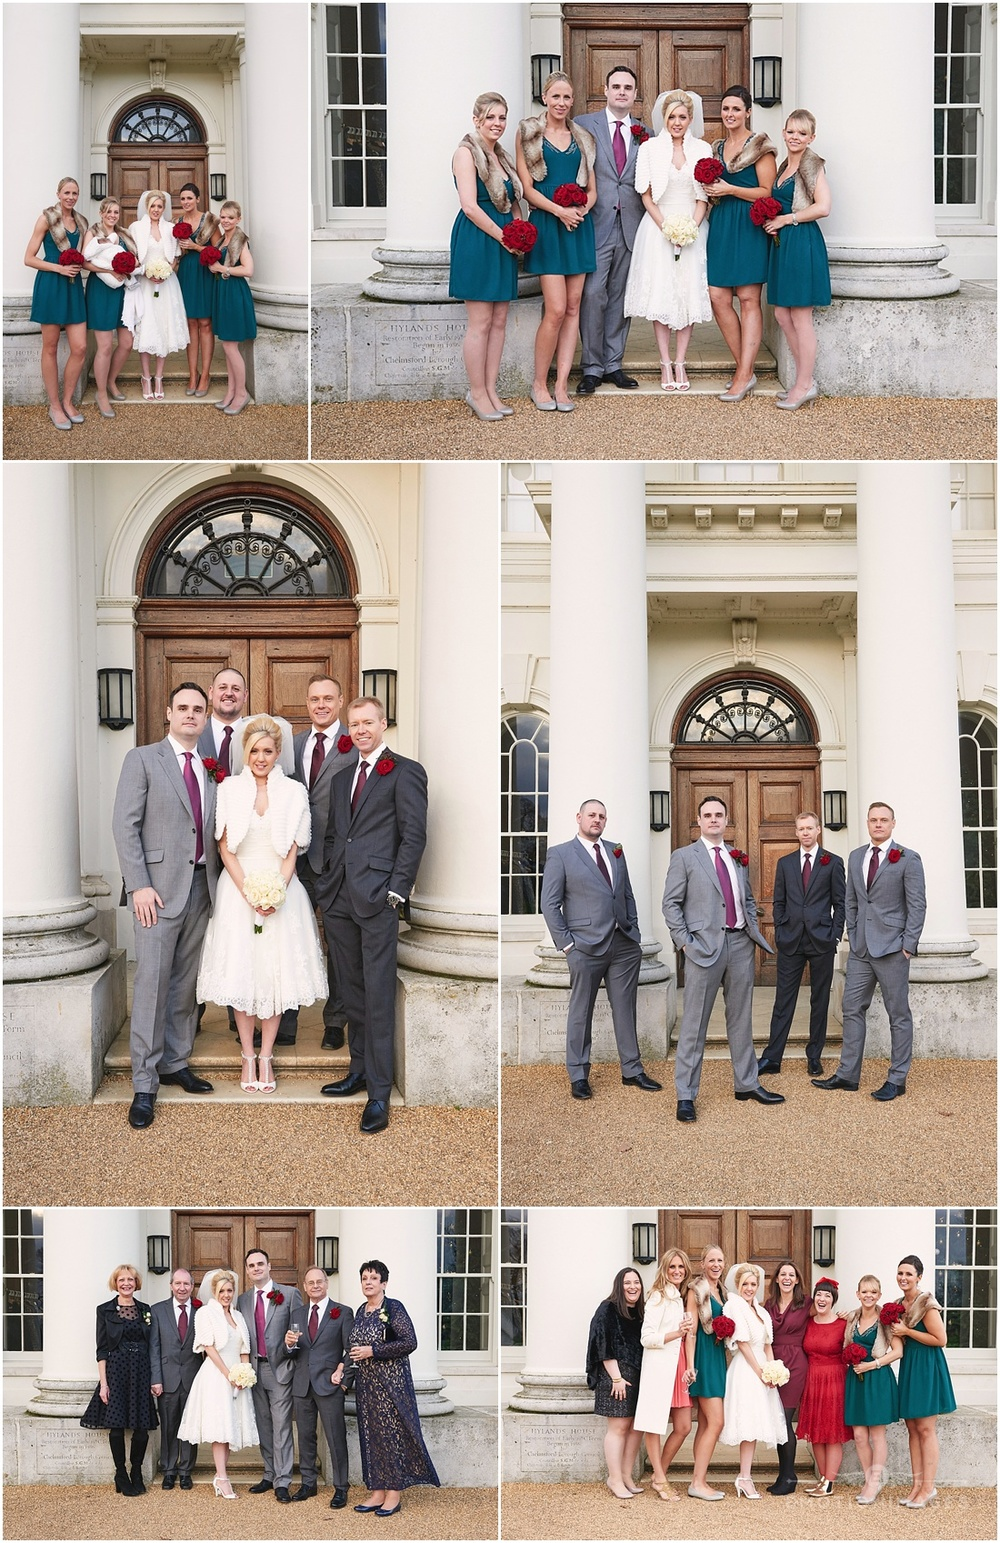 Hylands_House_wedding_photography_e-motion_images_010.JPG